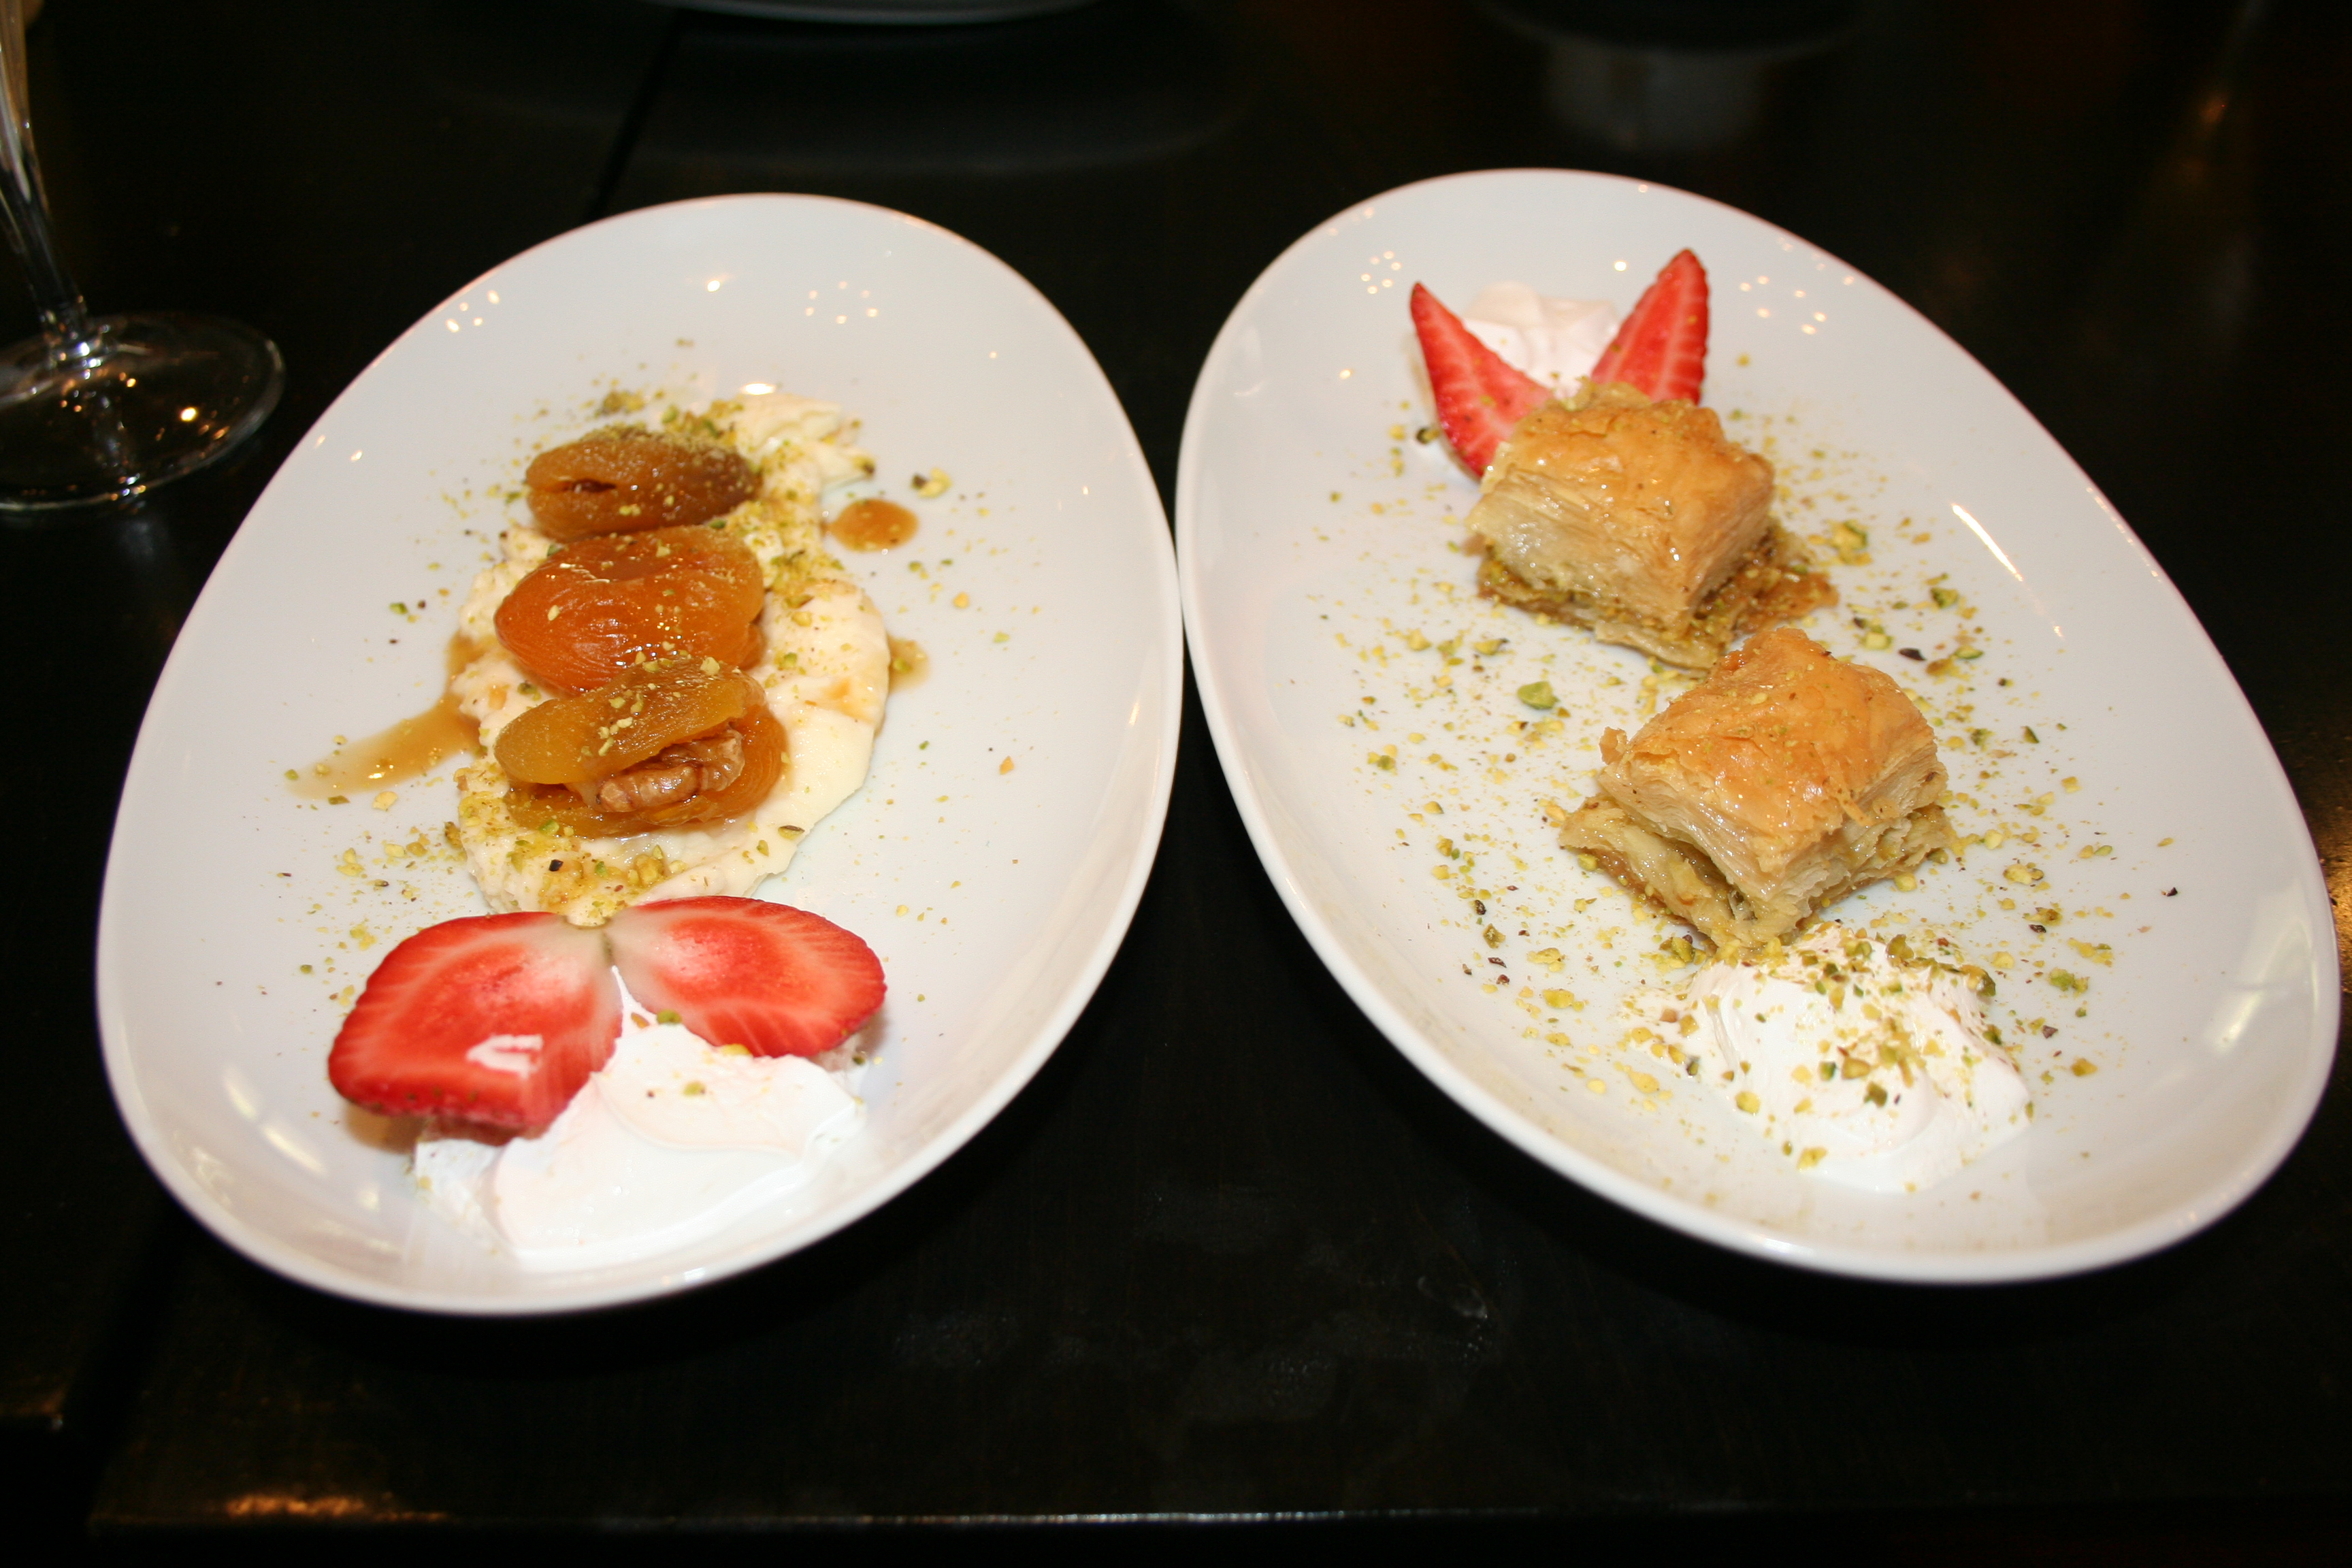 Decadent desserts include apricots stuffed with creme and topped with pistachios (left) and baklava. (Photo: Mark Heckathorn/DC on Heels)